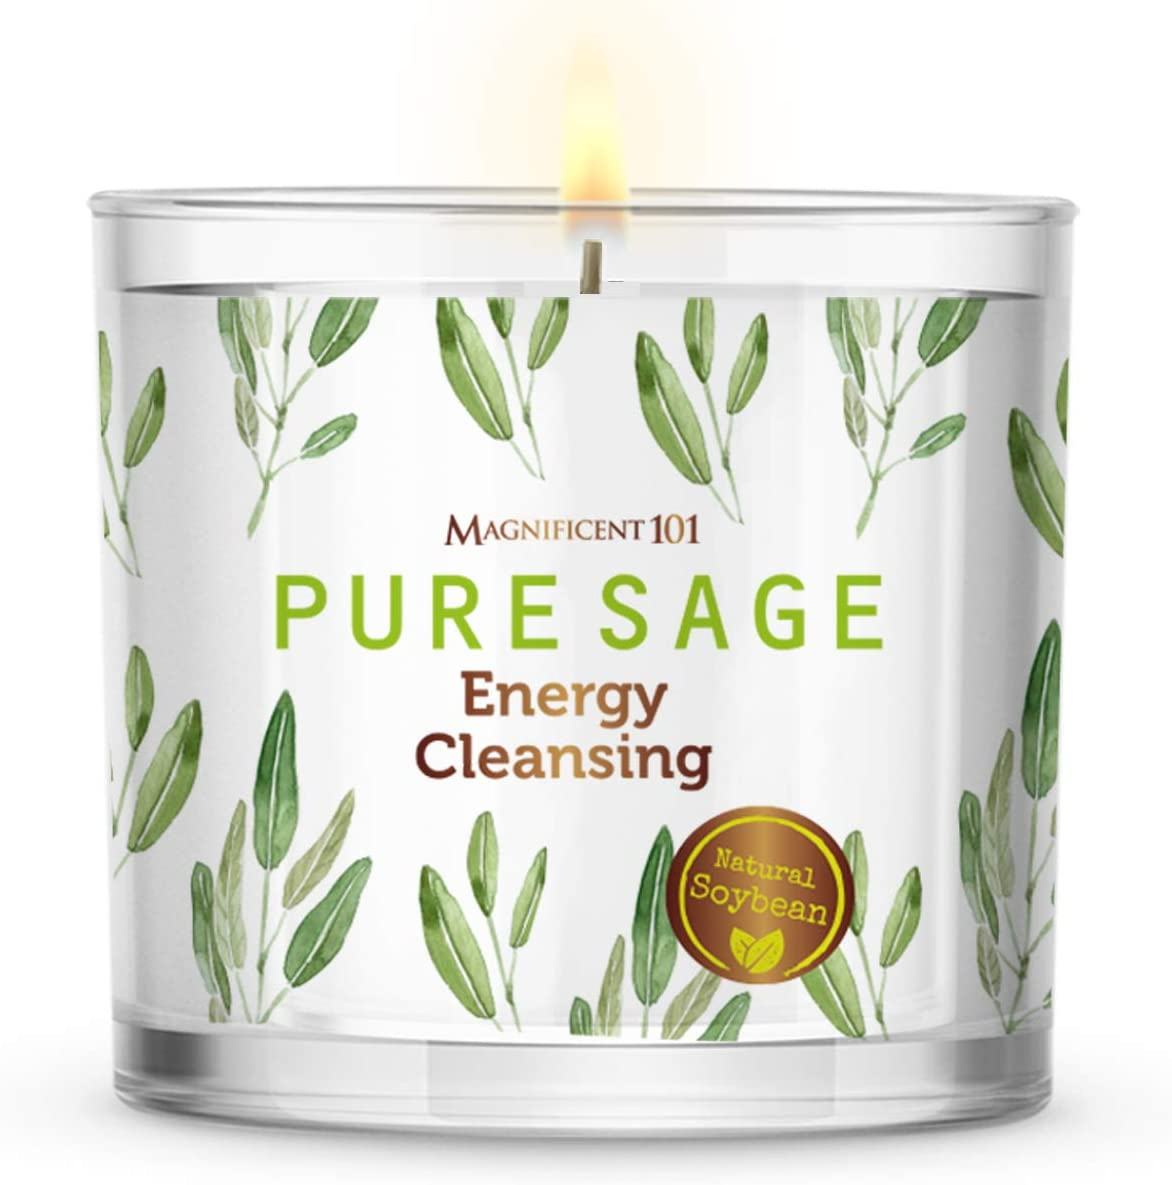 MAGNIFICENT 101 Large Pure SAGE Smudge Candle for House Energy Cleansing, Banishes Negative Energy I Purification and Chakra Healing - Natural Soy Wax Tin Candle for Aromatherapy (14oz)